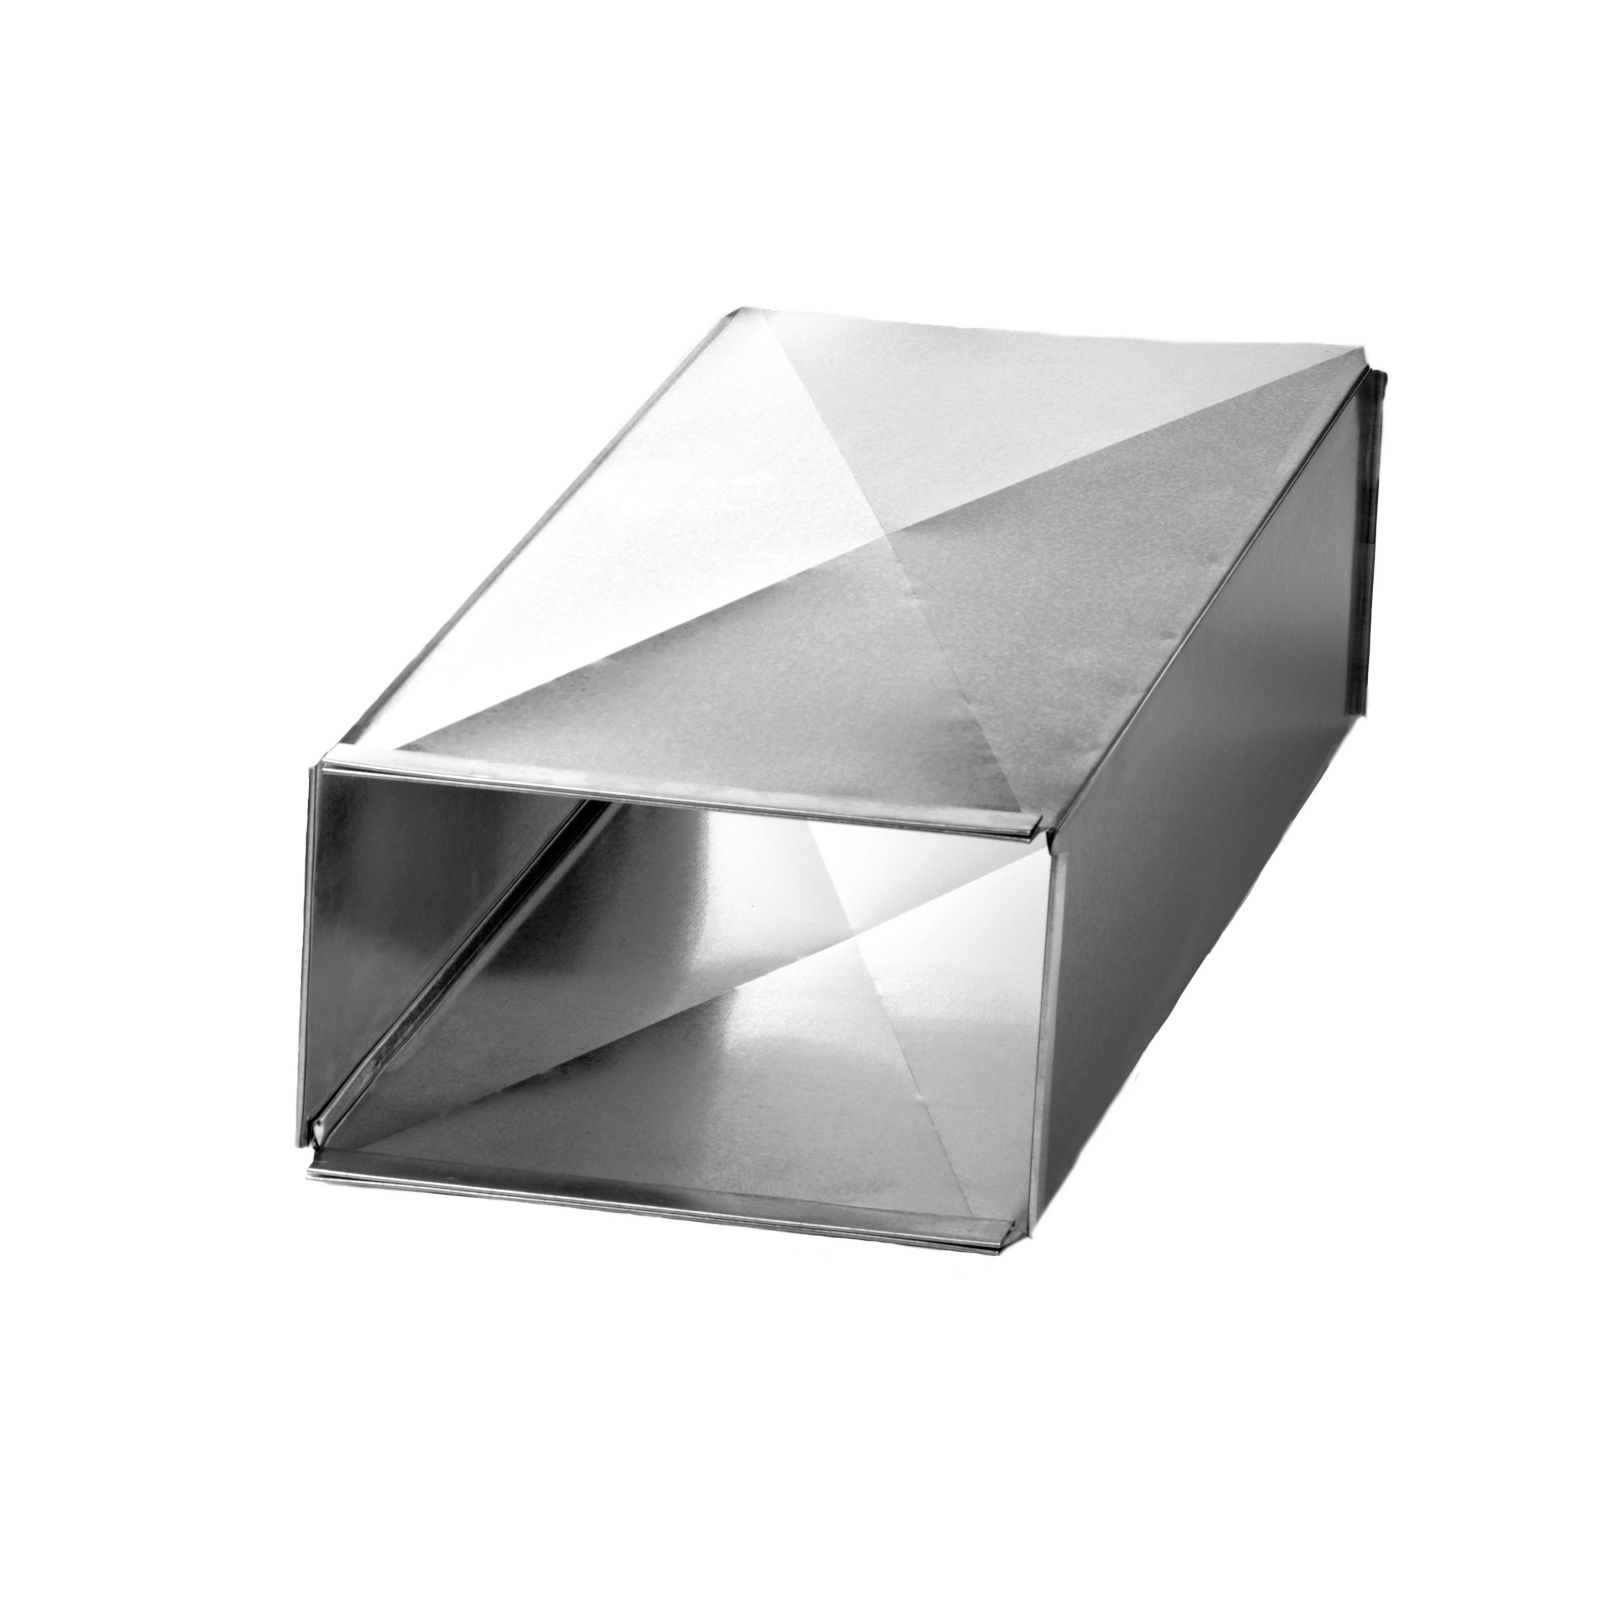 "Southwark TD482412 - Trunk Duct, 24"" X 12"", 48"" Joints"